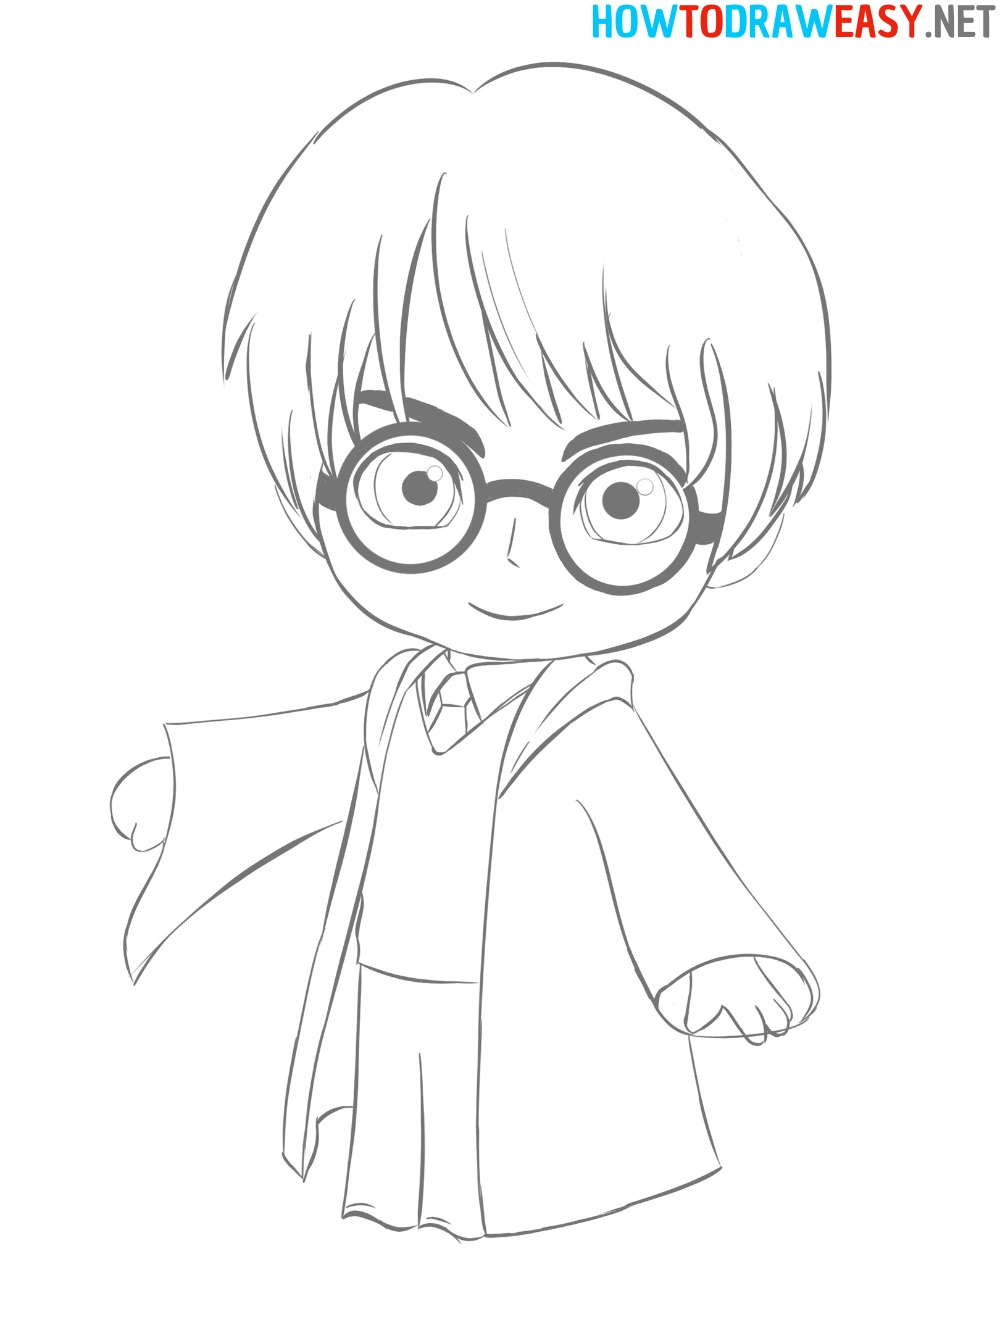 How to Draw Harry Potter Easy Drawing